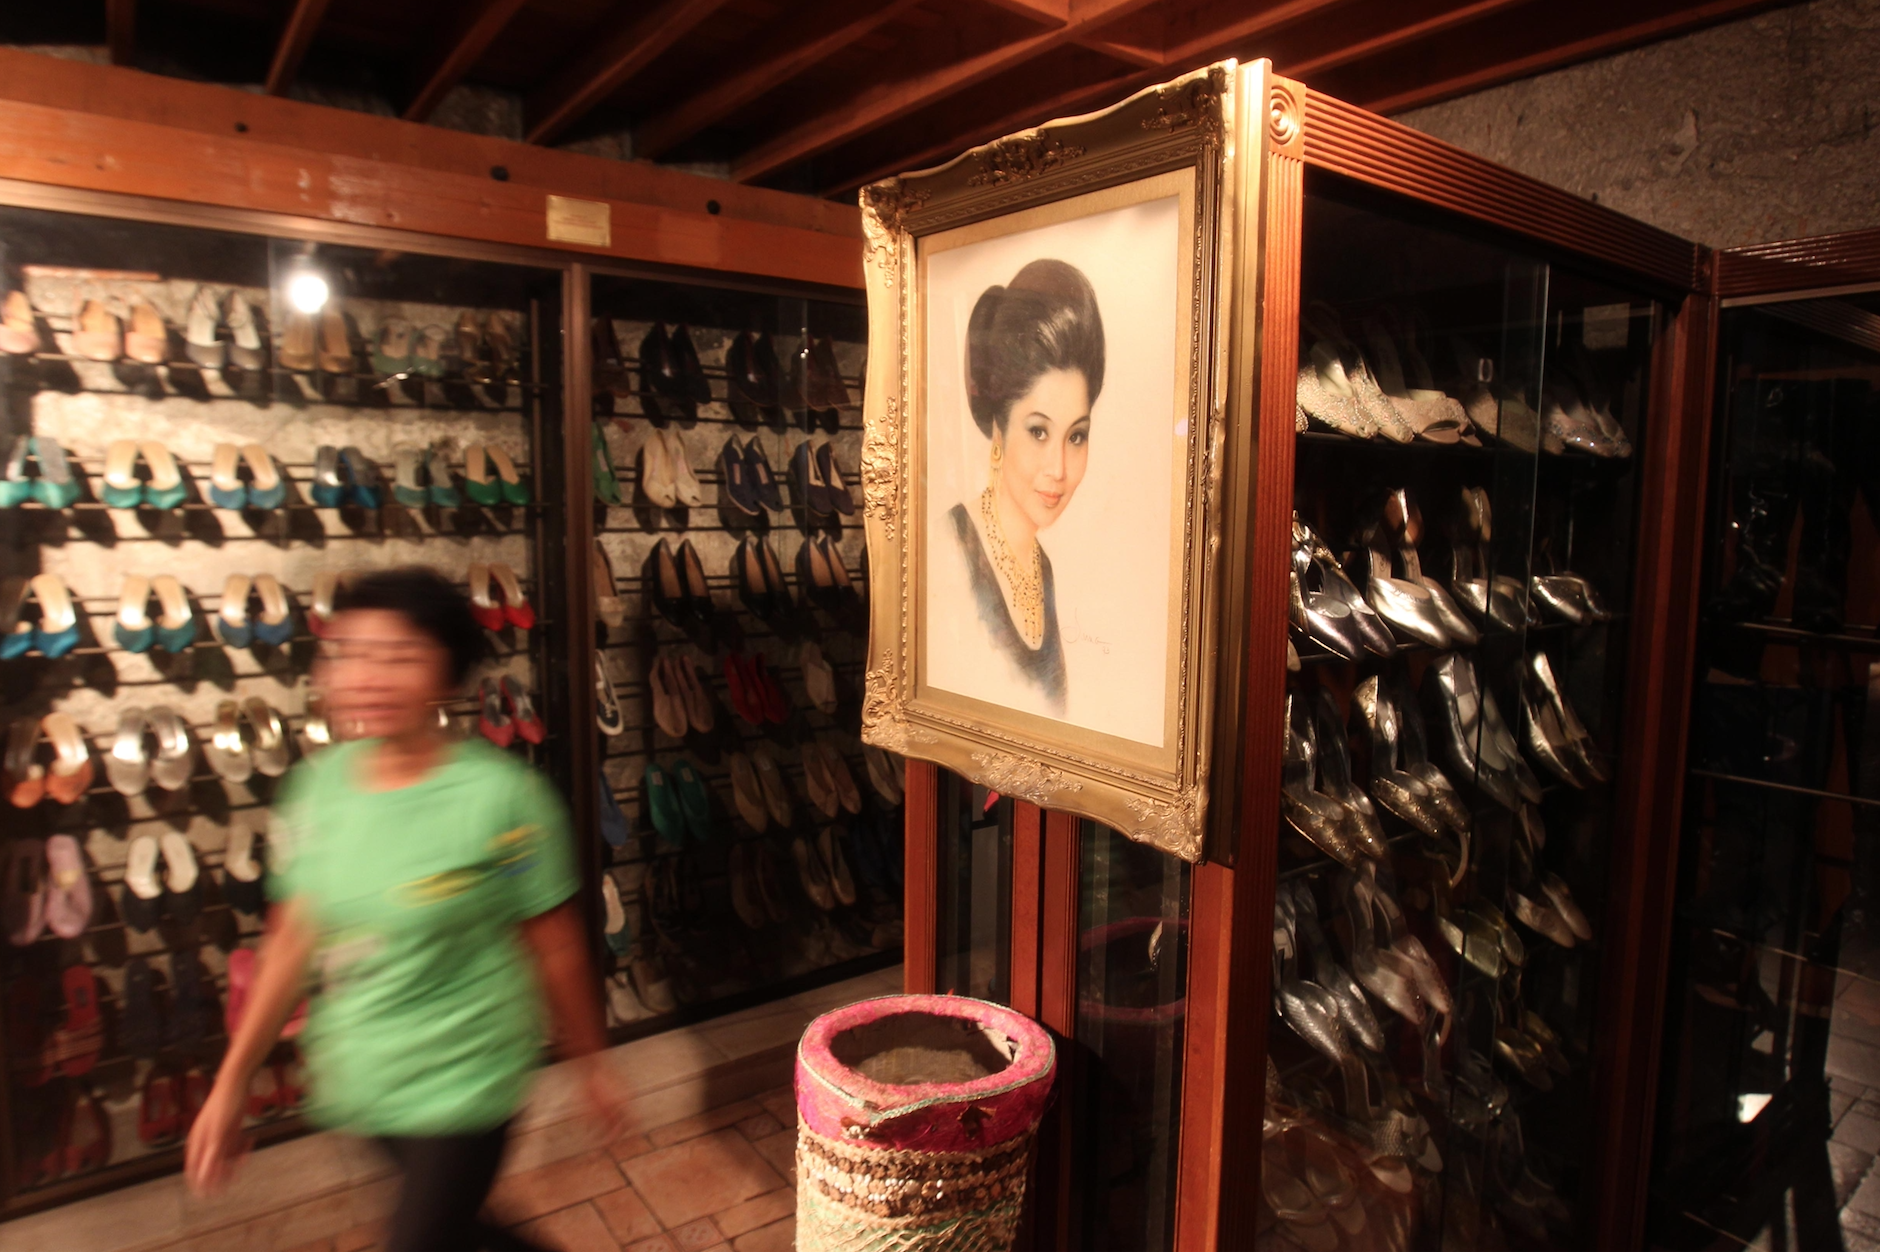 Part of Imelda Marcos' confiscated designer shoe collection.